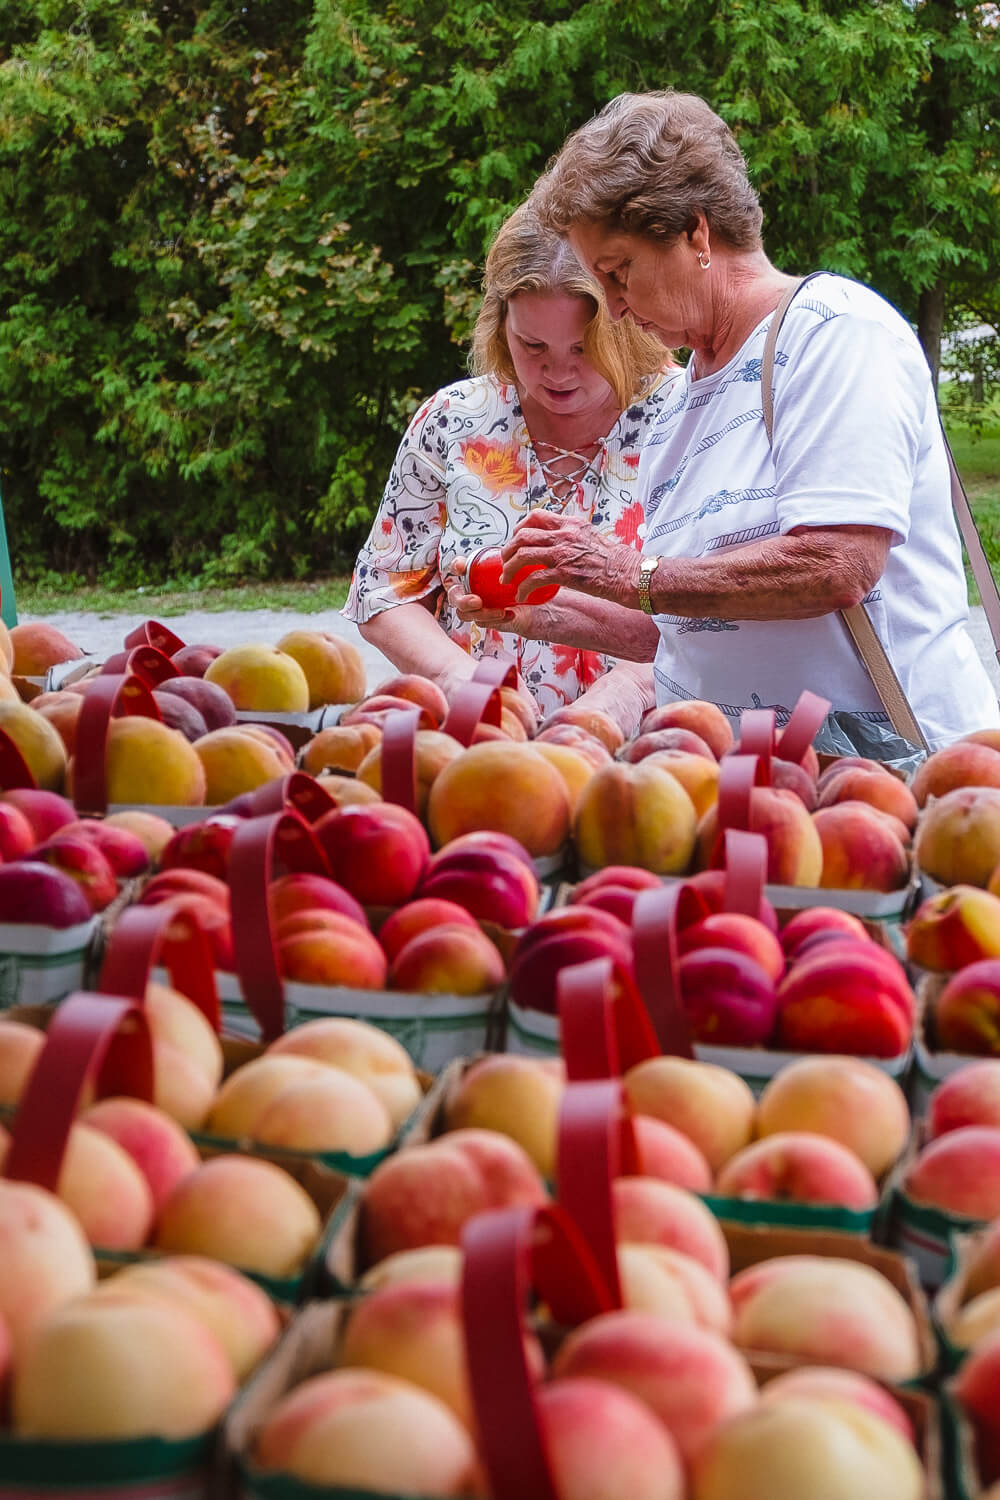 Women buying Ontario peaches